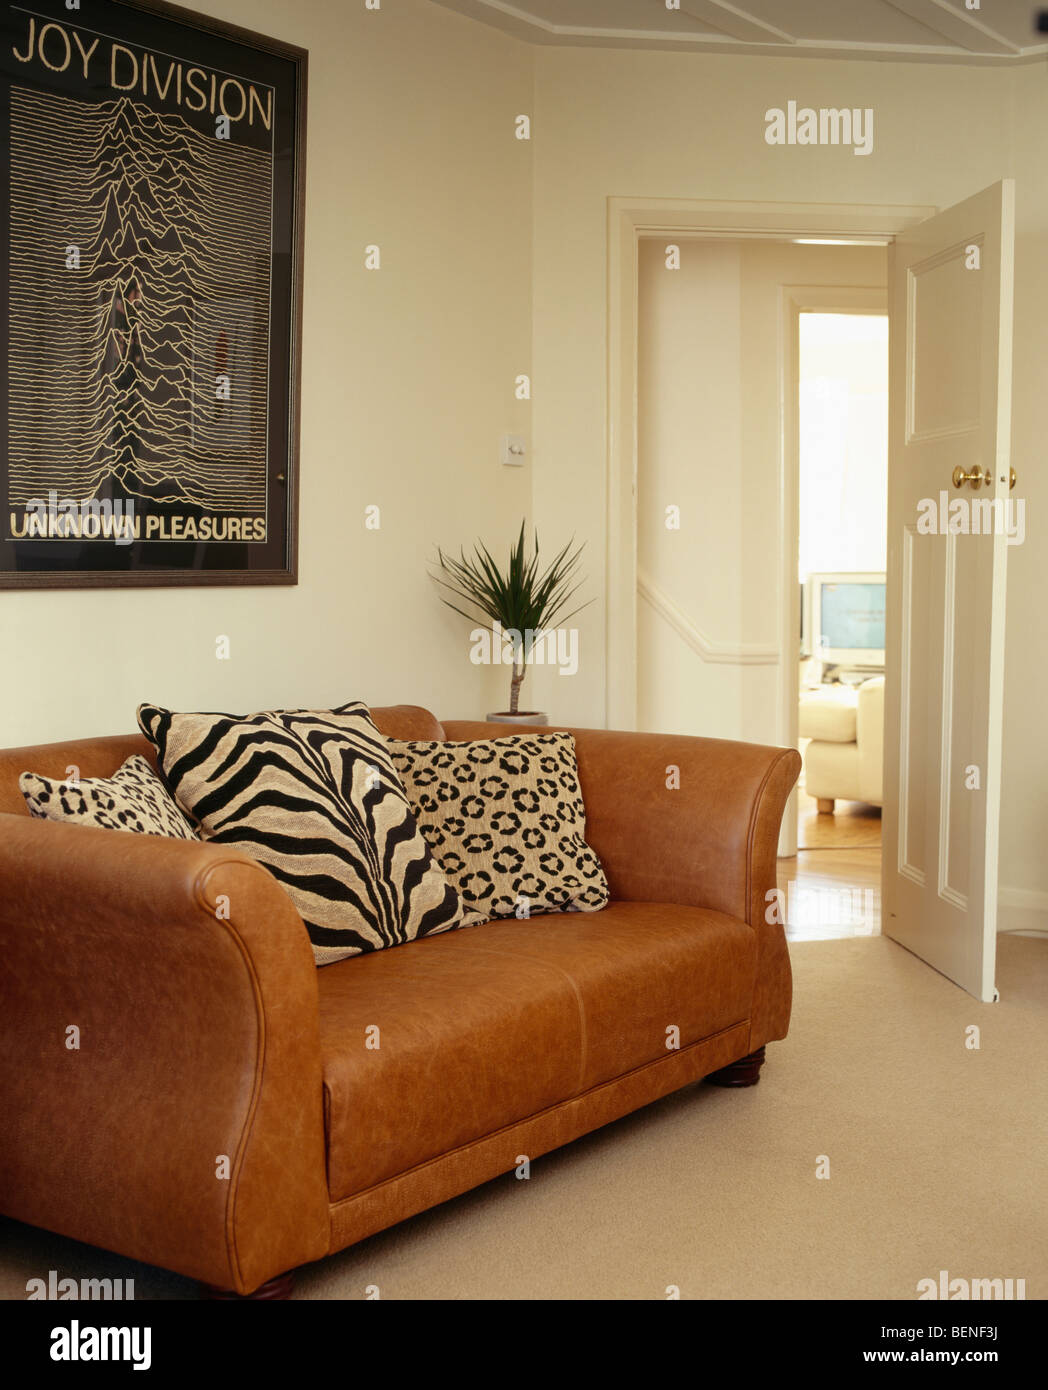 Tiger And Leopard Print Cushions On Brown Leather Sofa In Modern Cream  Living Room